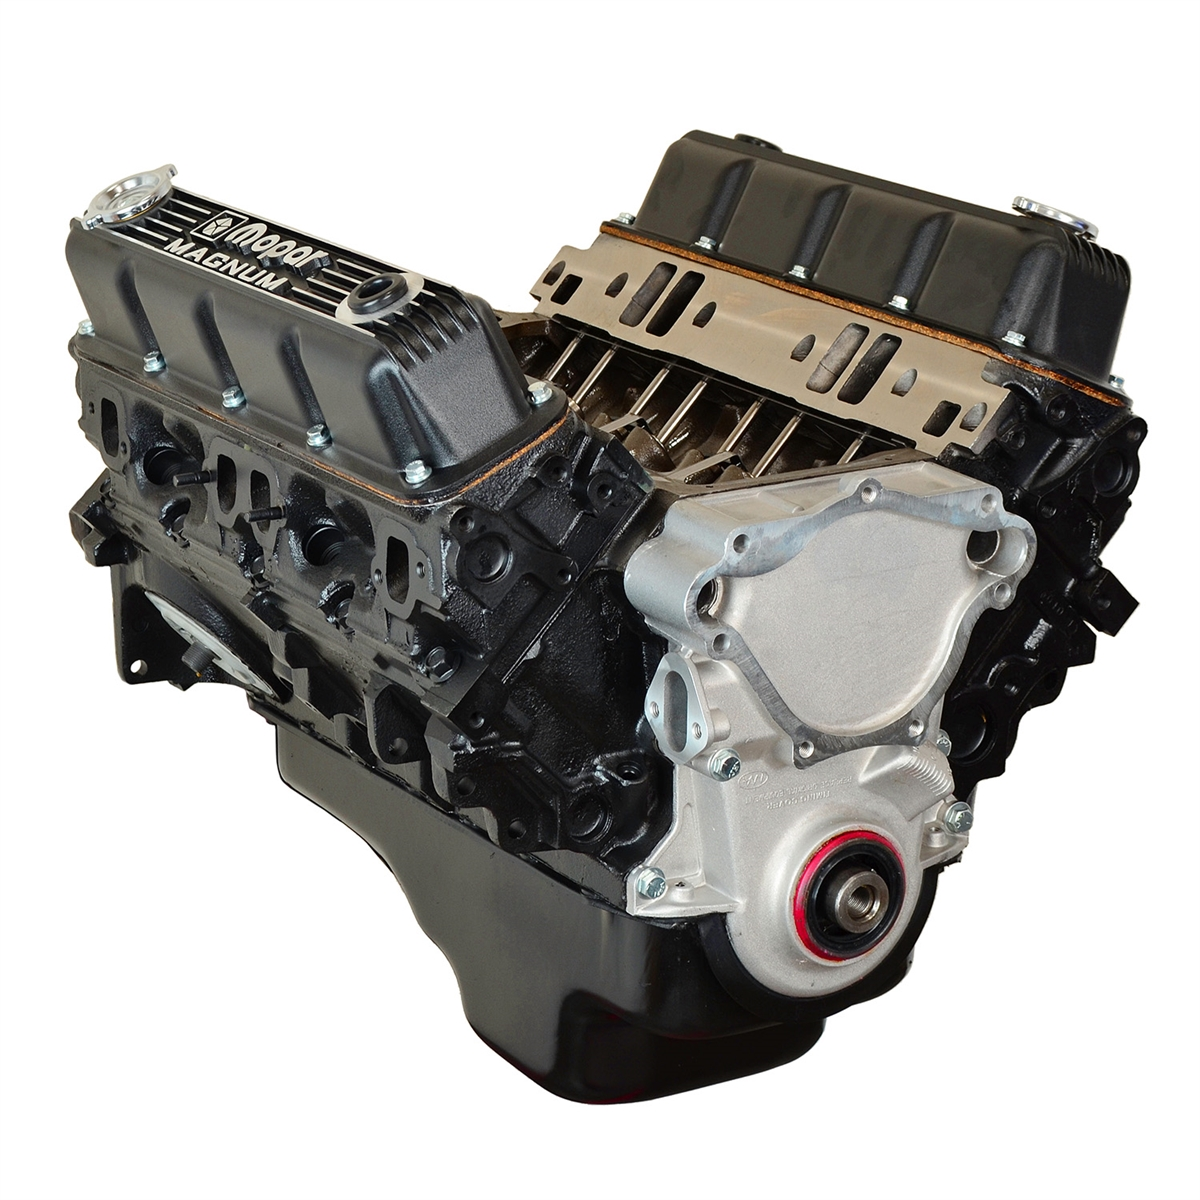 jeep 4 0 stroker engine for sale [ 1200 x 1200 Pixel ]